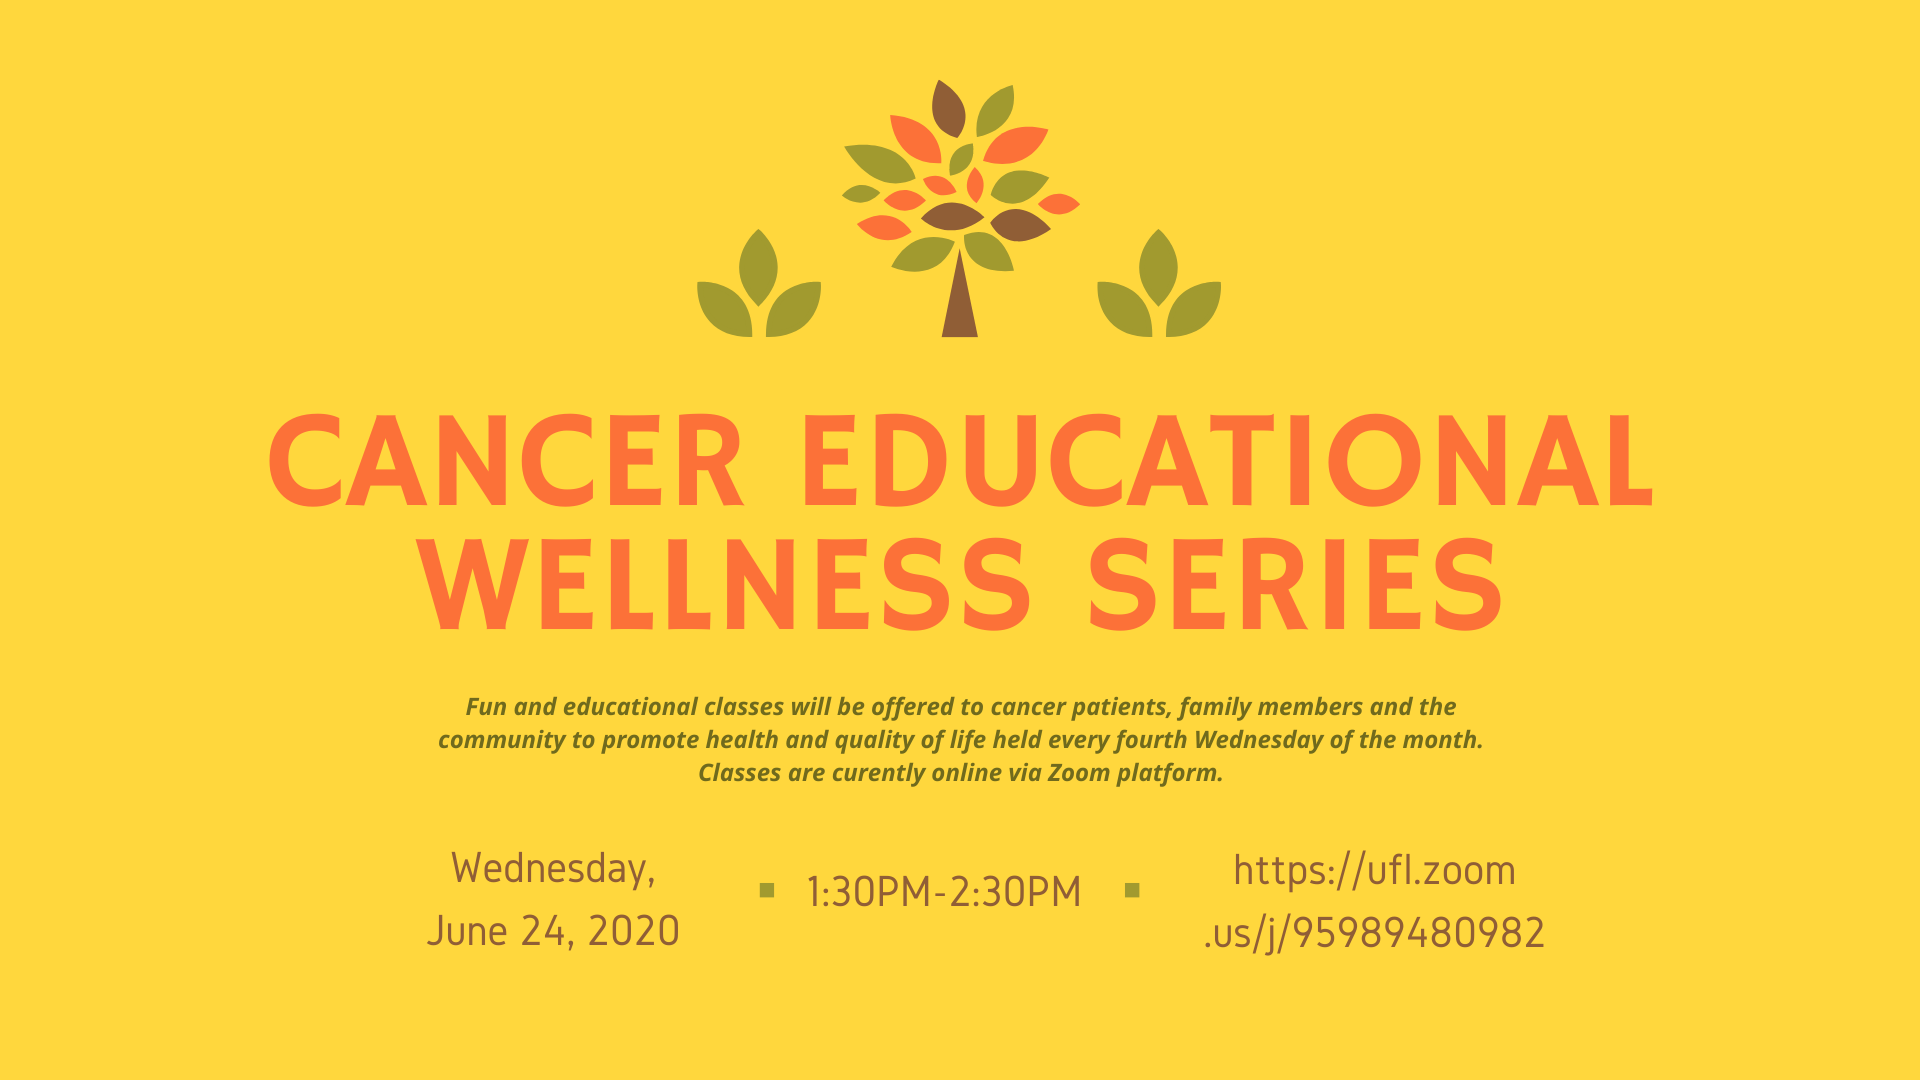 Upcoming Cancer Educational Wellness Series